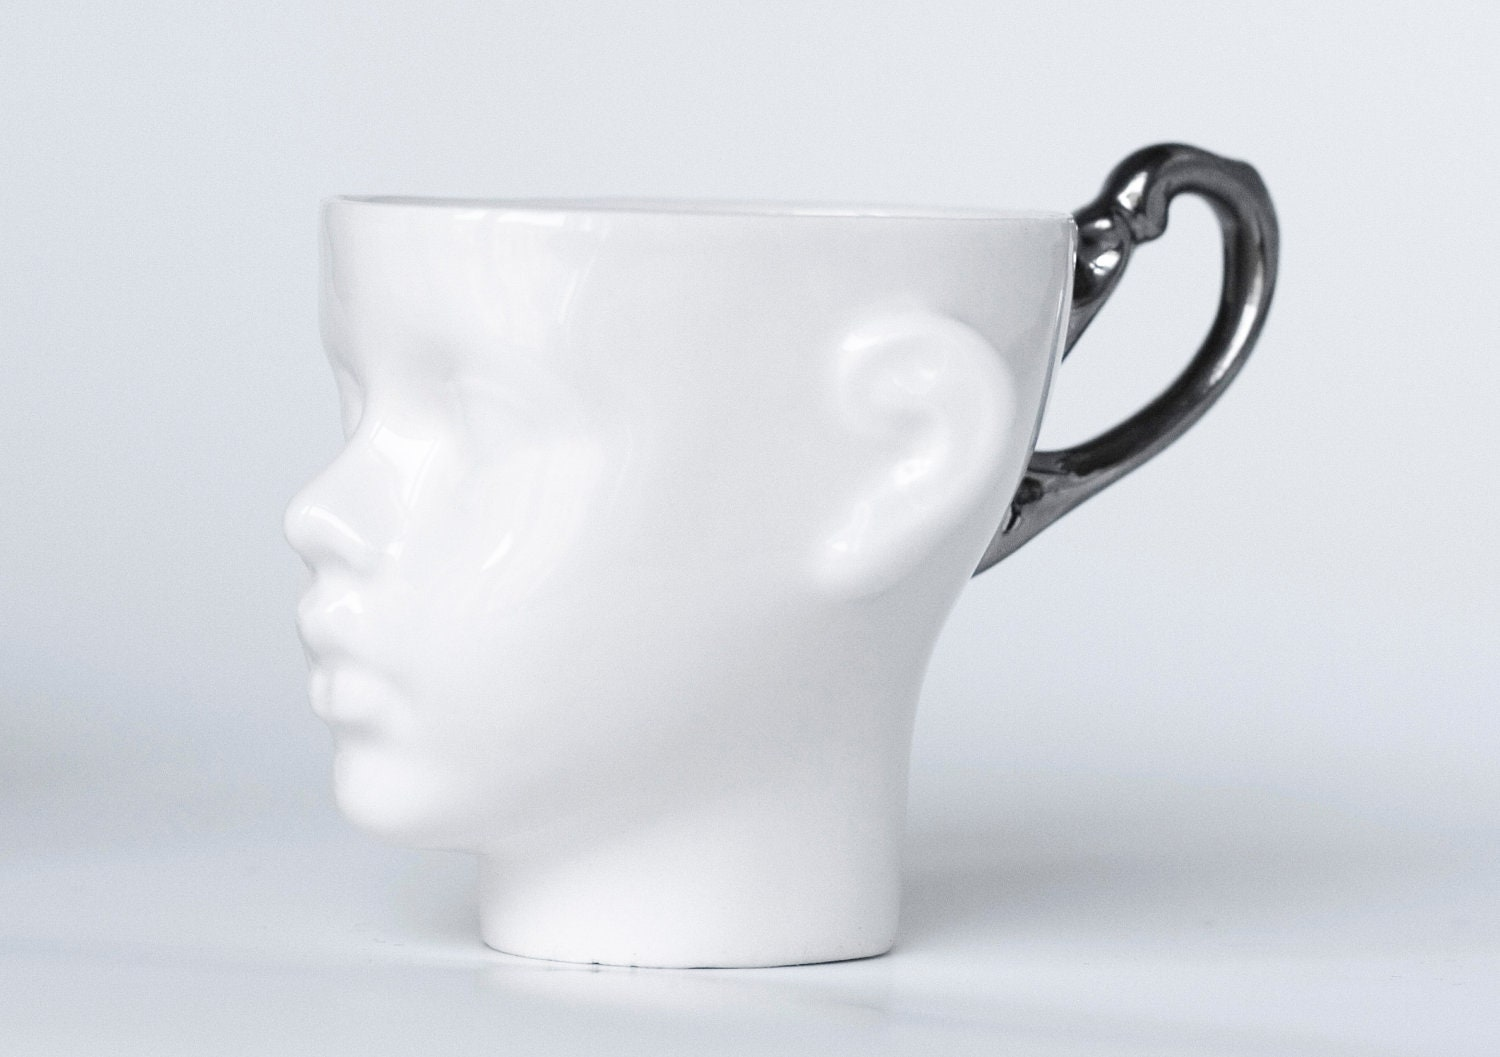 Whimsical doll head cup - white porcelain and silver artisan cup, whimsical ceramic design